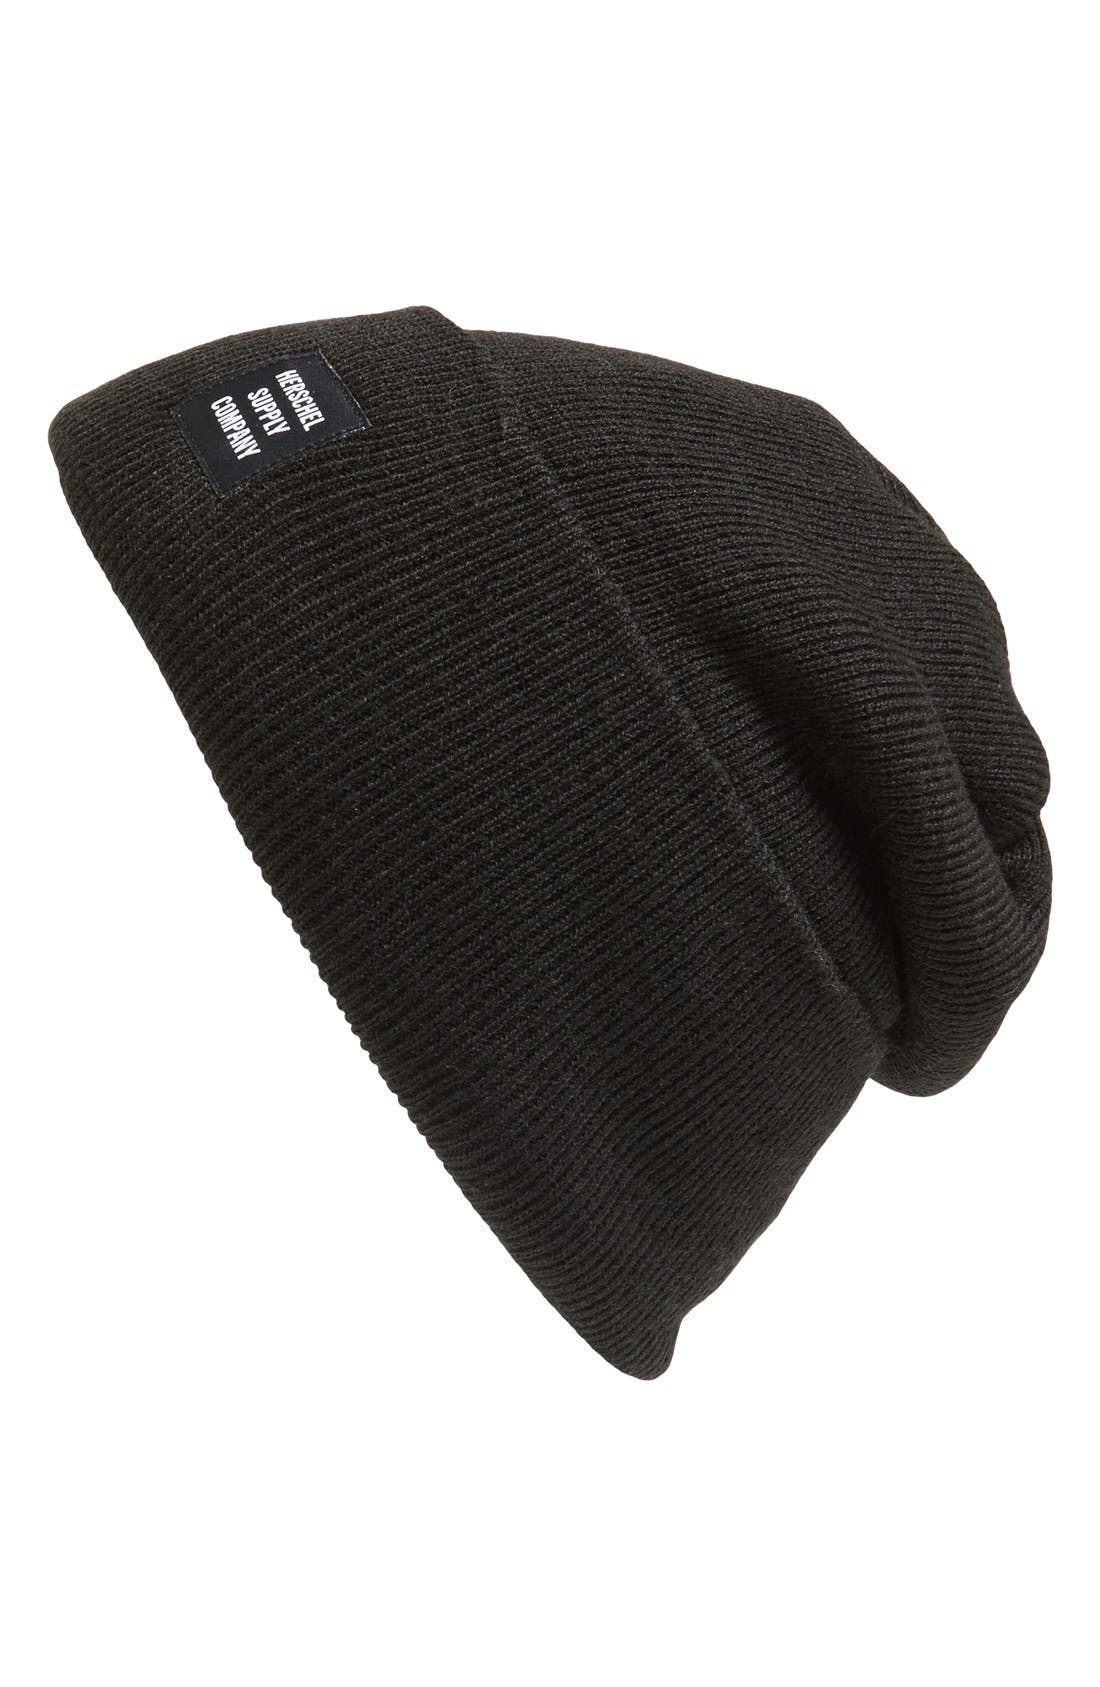 Herschel Supply Co. 'Abbott' Knit Cap